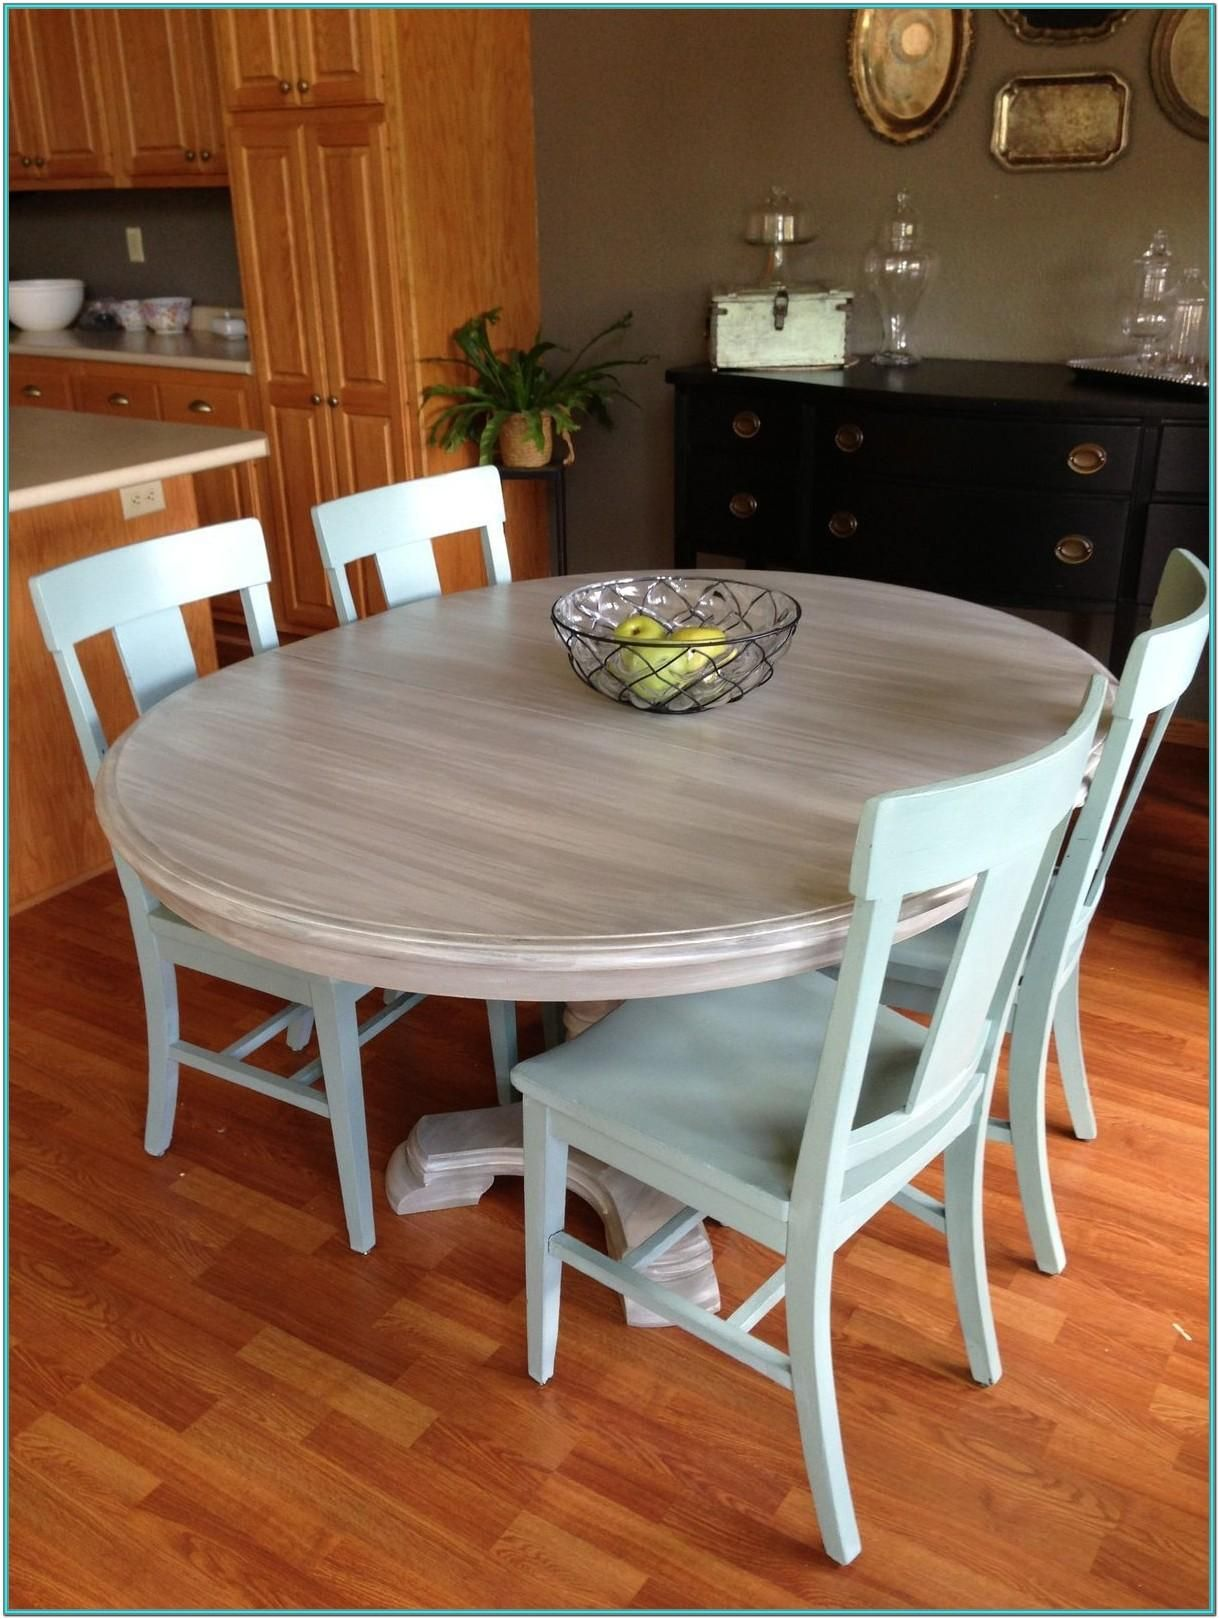 Chalk Paint Dining Table Ideas Painted Kitchen Tables Chalk Paint Dining Table Kitchen Table Makeover